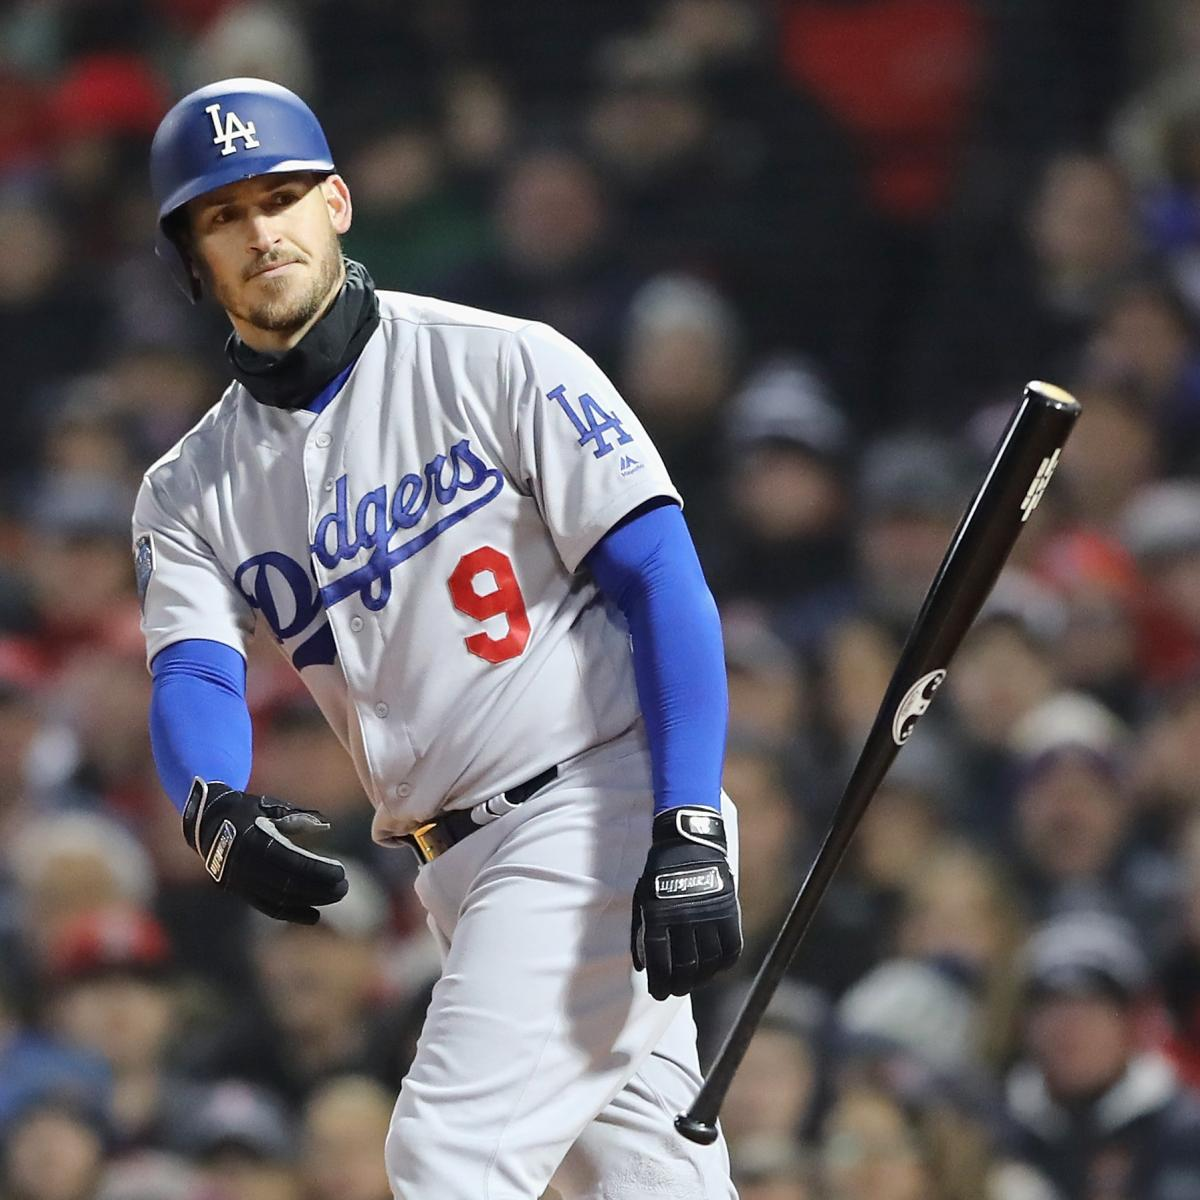 Dodgers Rumors: LA Isnt Planning for Yasmani Grandal to Return Due to Prospects https://t.co/Ybytiawtma https://t.co/iF3IxWmVNb